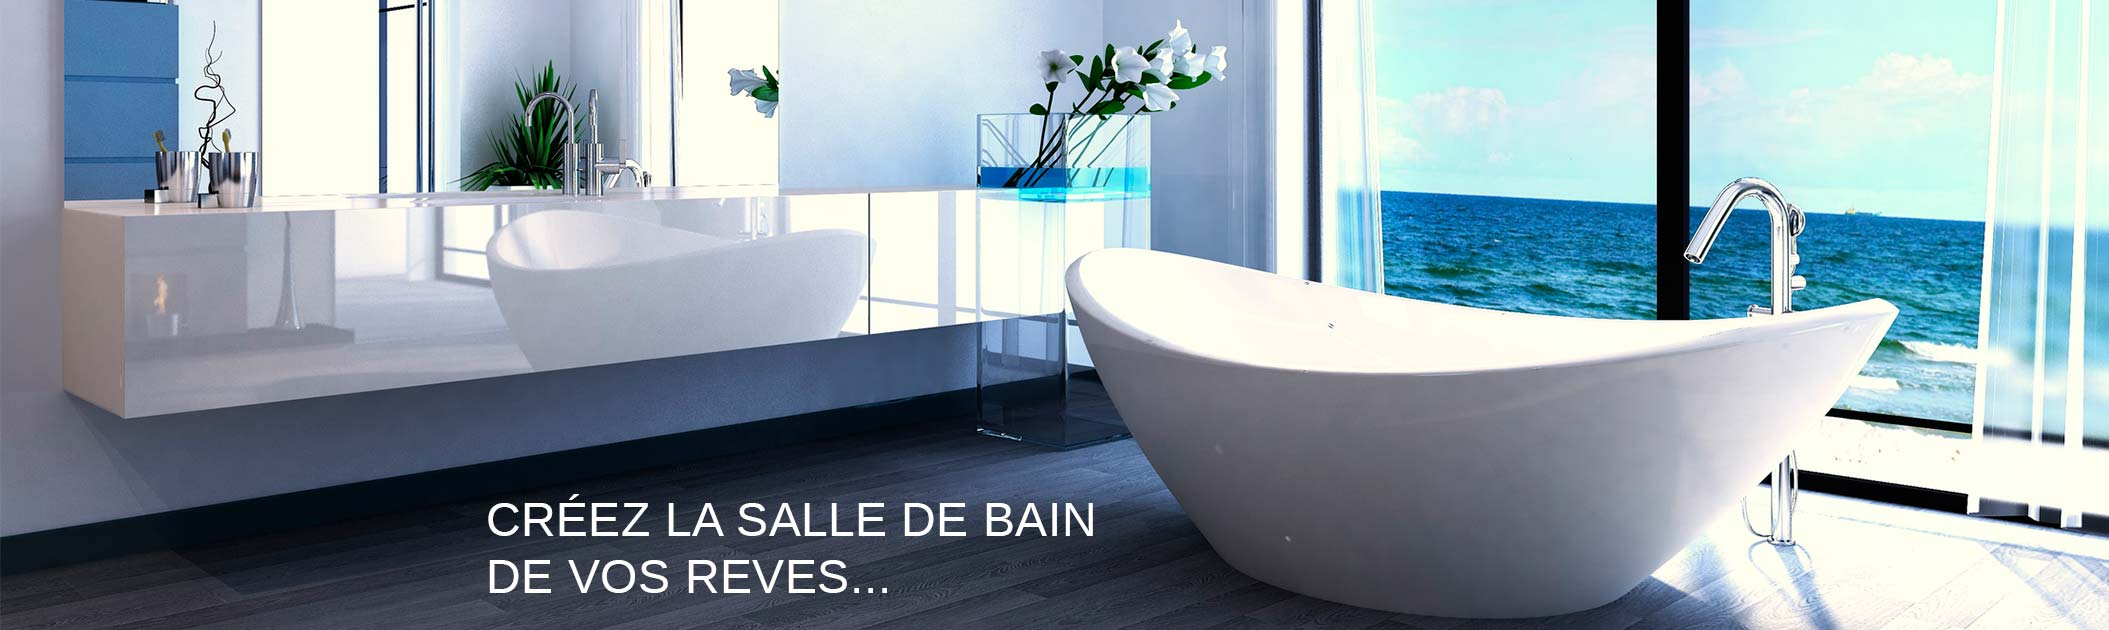 travaux de r novation de salle de bain sur grenoble. Black Bedroom Furniture Sets. Home Design Ideas